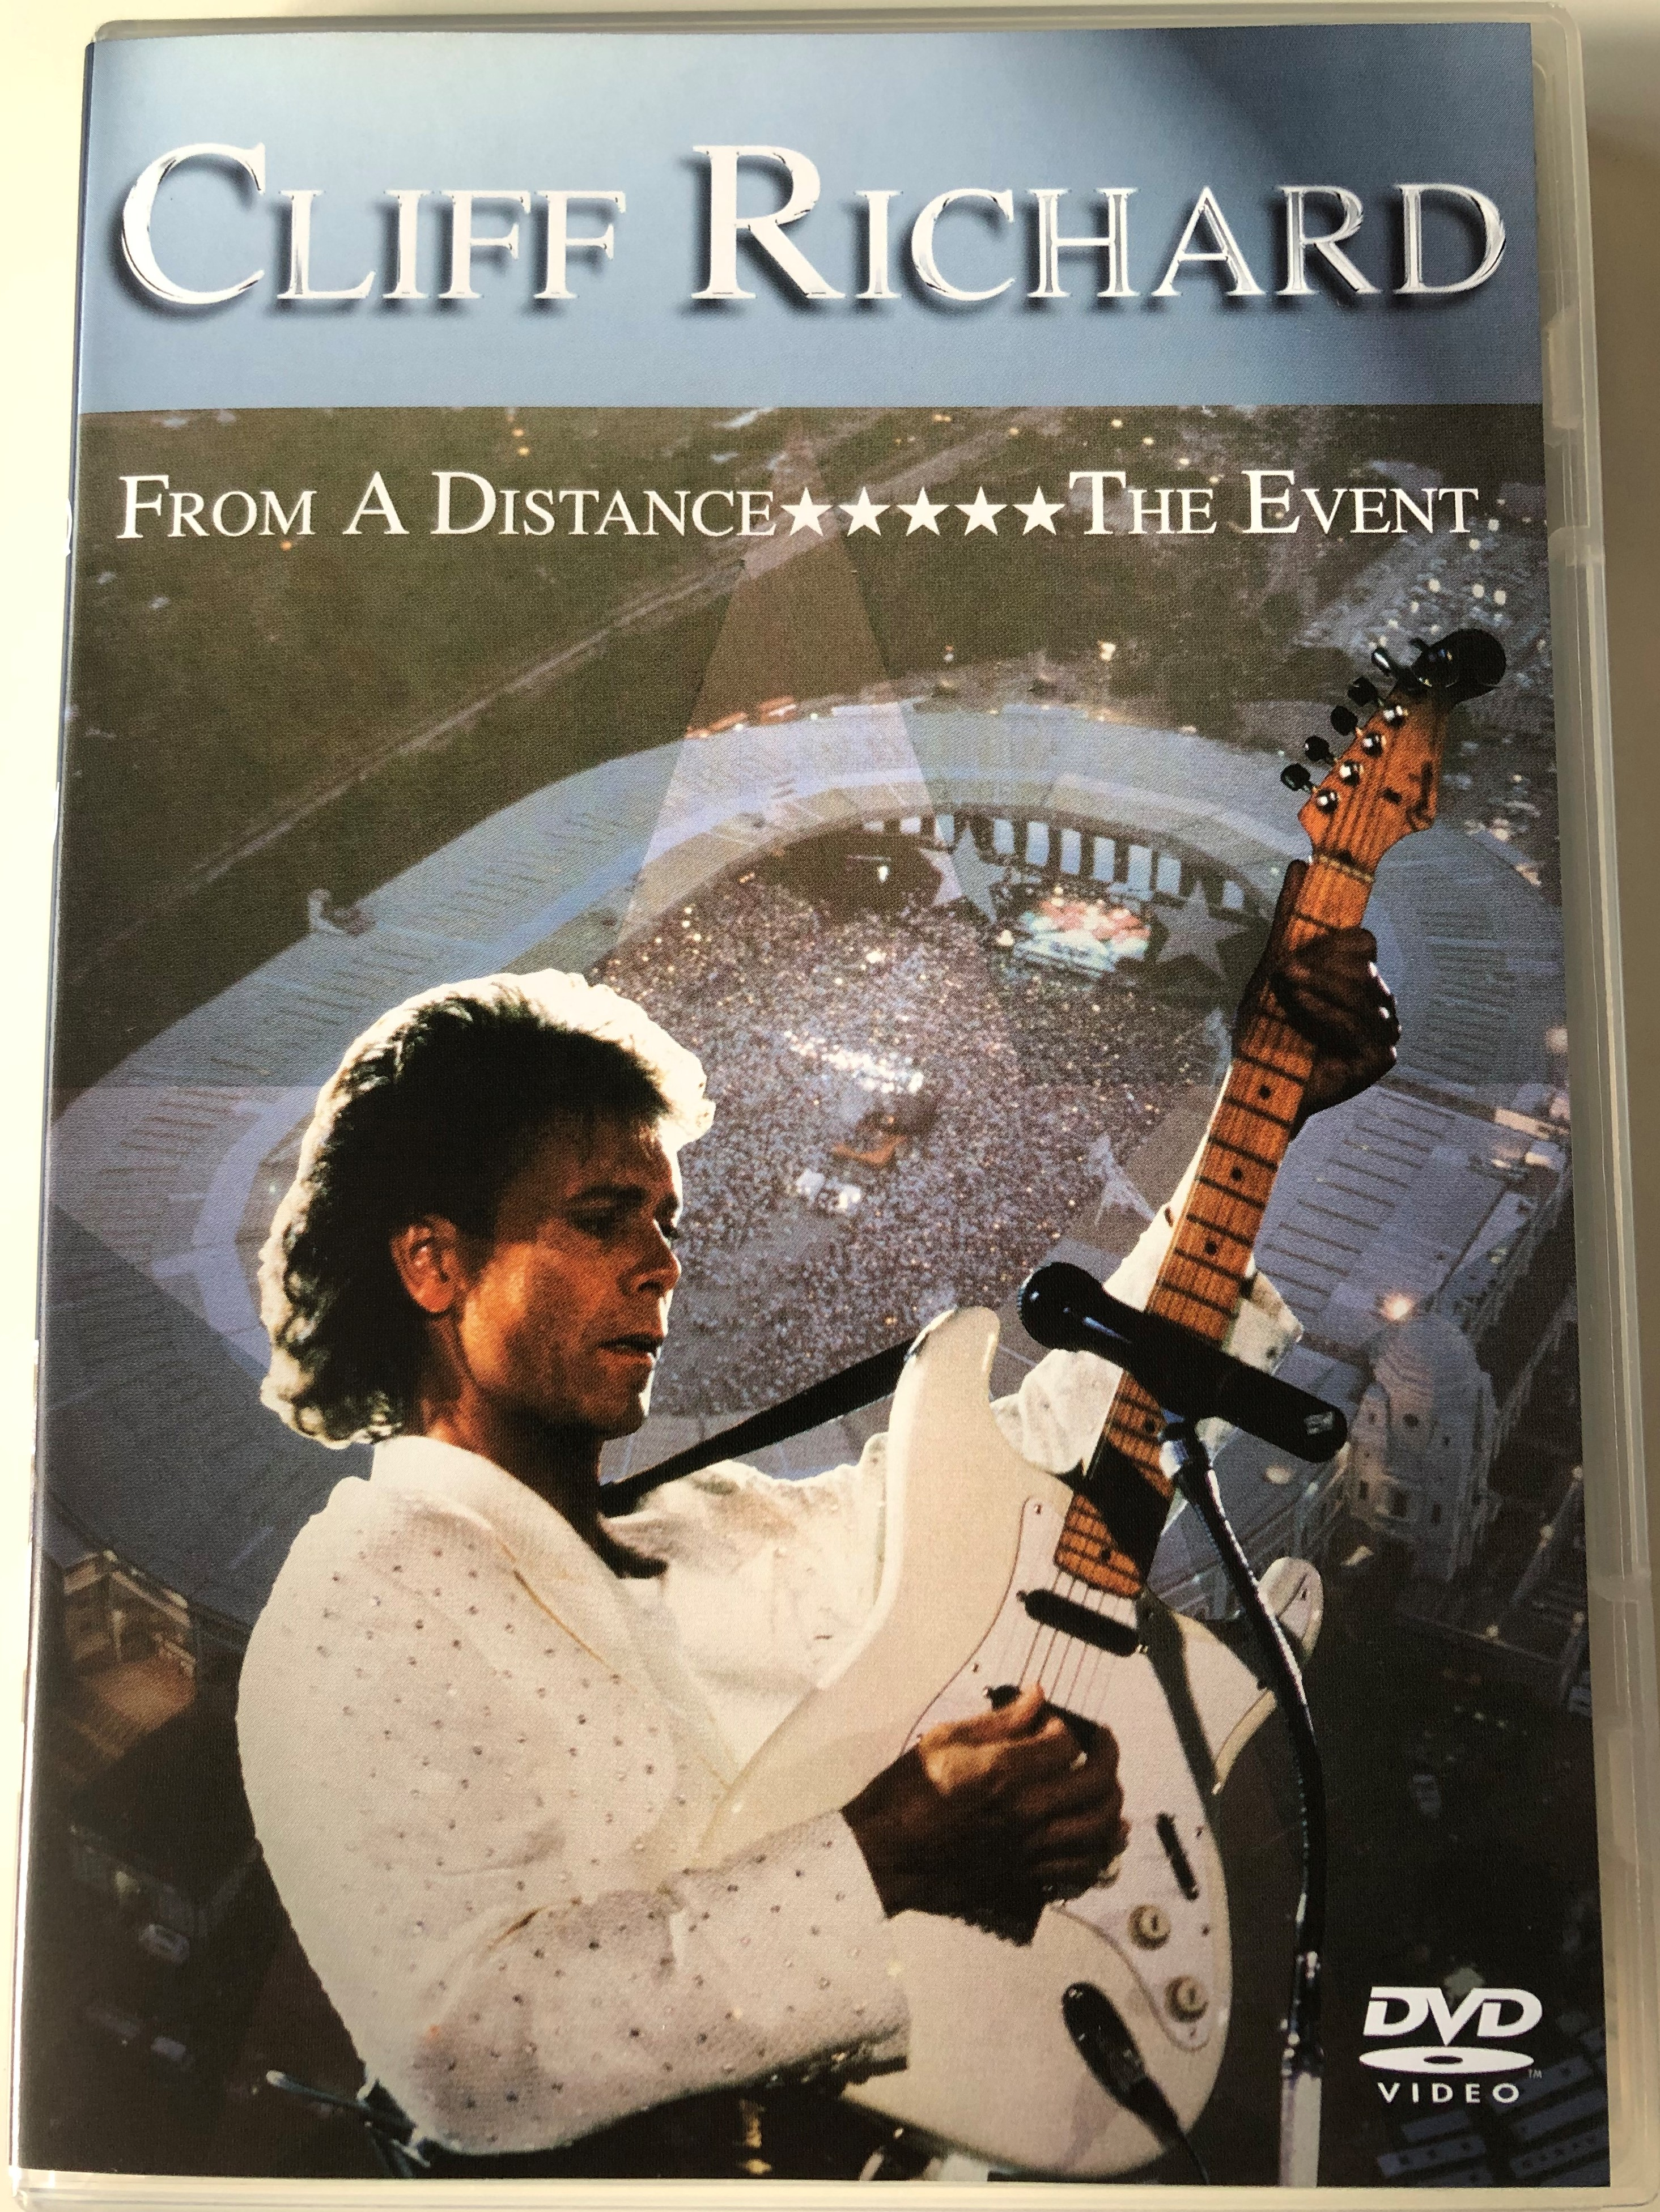 cliff-richard-from-a-distance-dvd-the-event-1.jpg